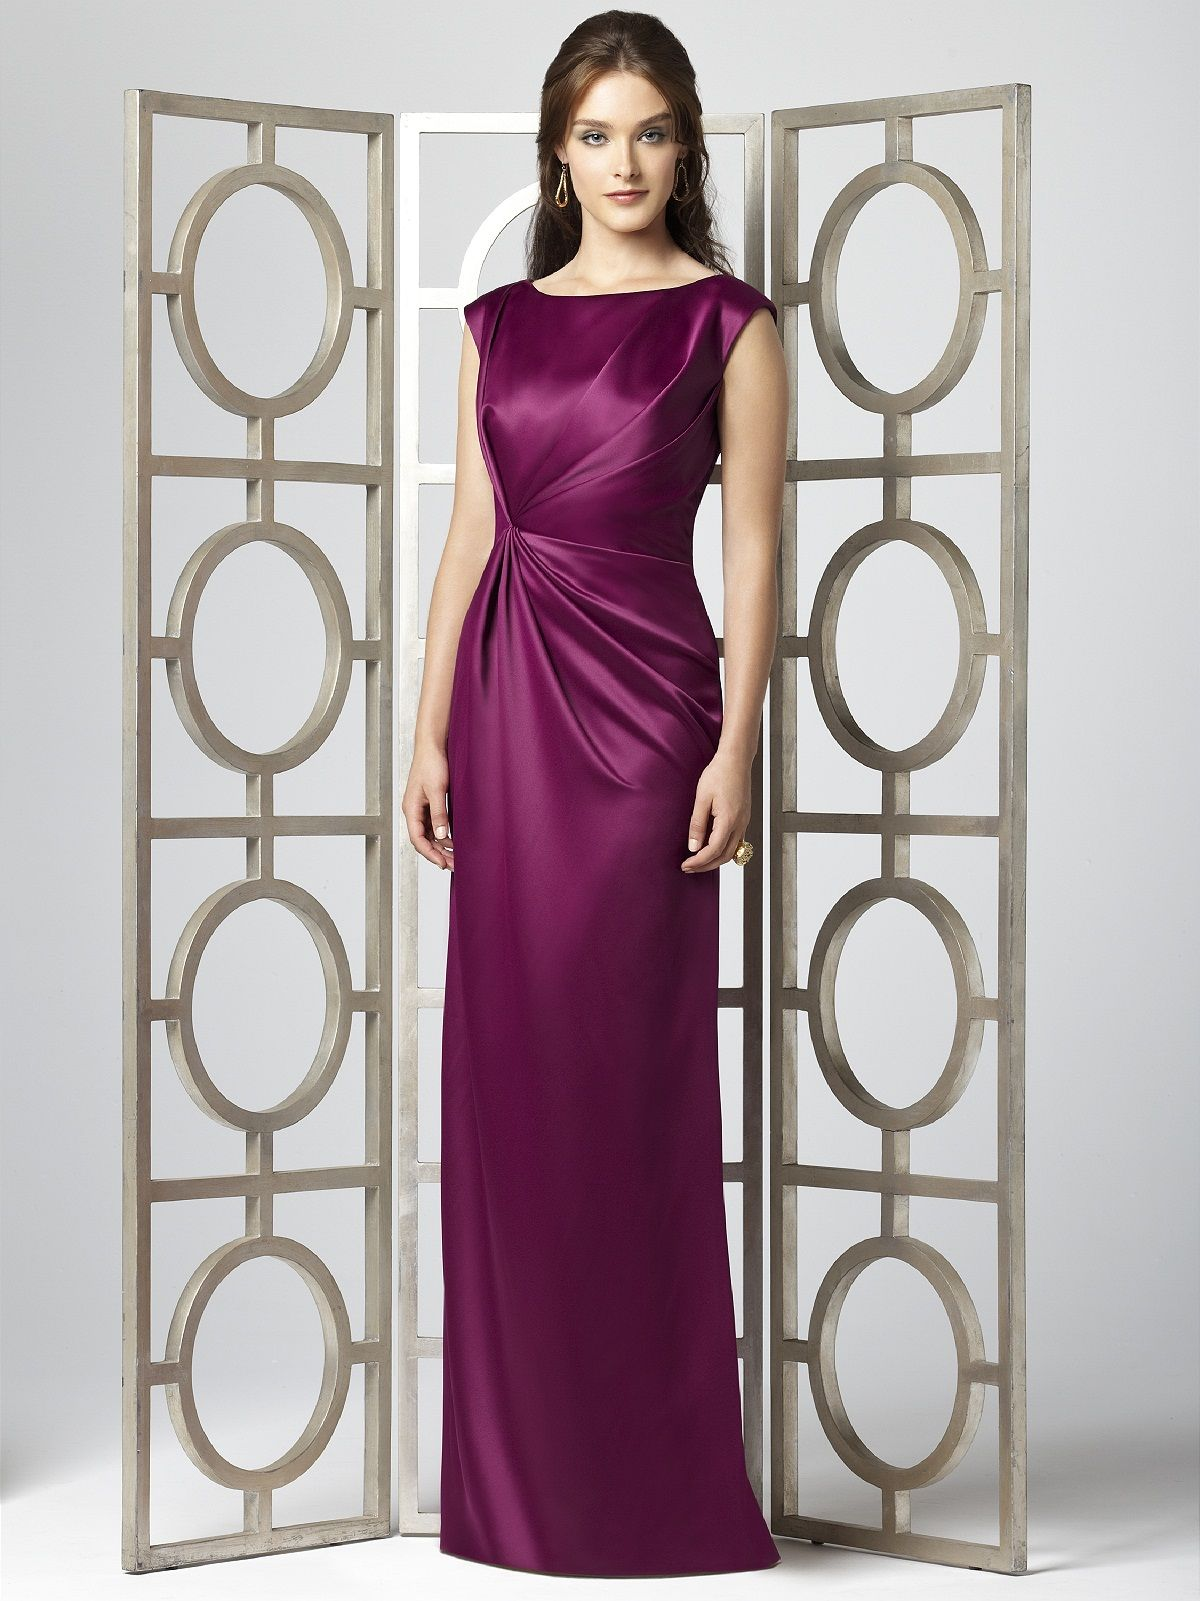 Dessy Group: Bridesmaids dresses, multiple colors | Fashion | Pinterest